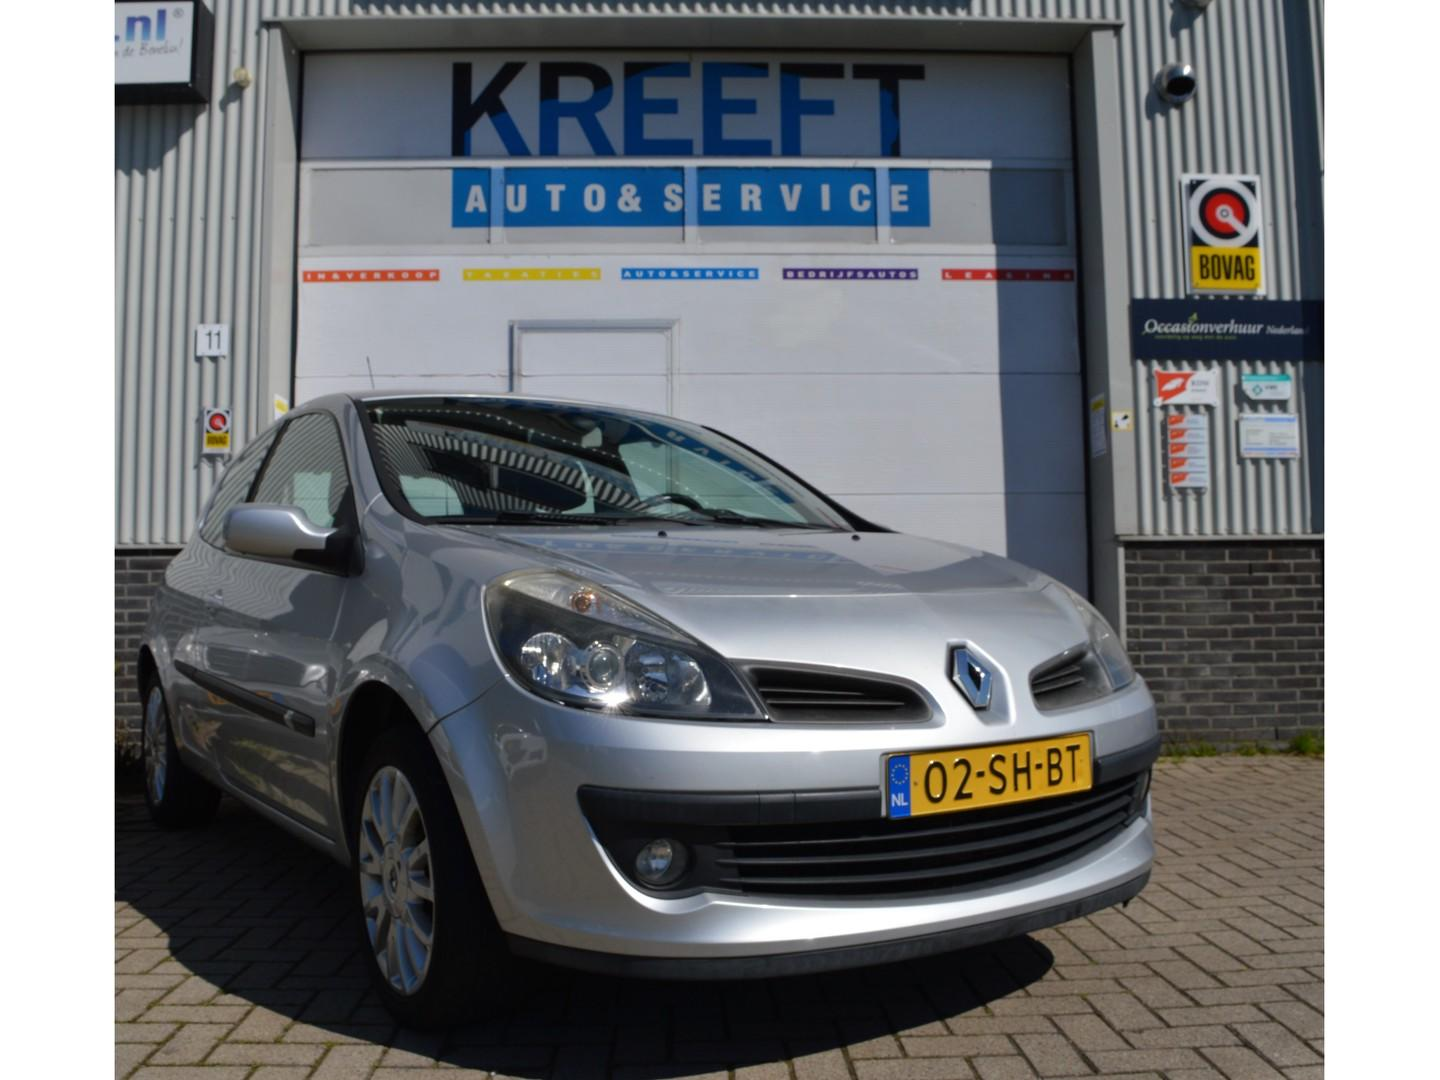 Renault Clio 1.6-16v dynamique luxe cruise / goed onderhouden